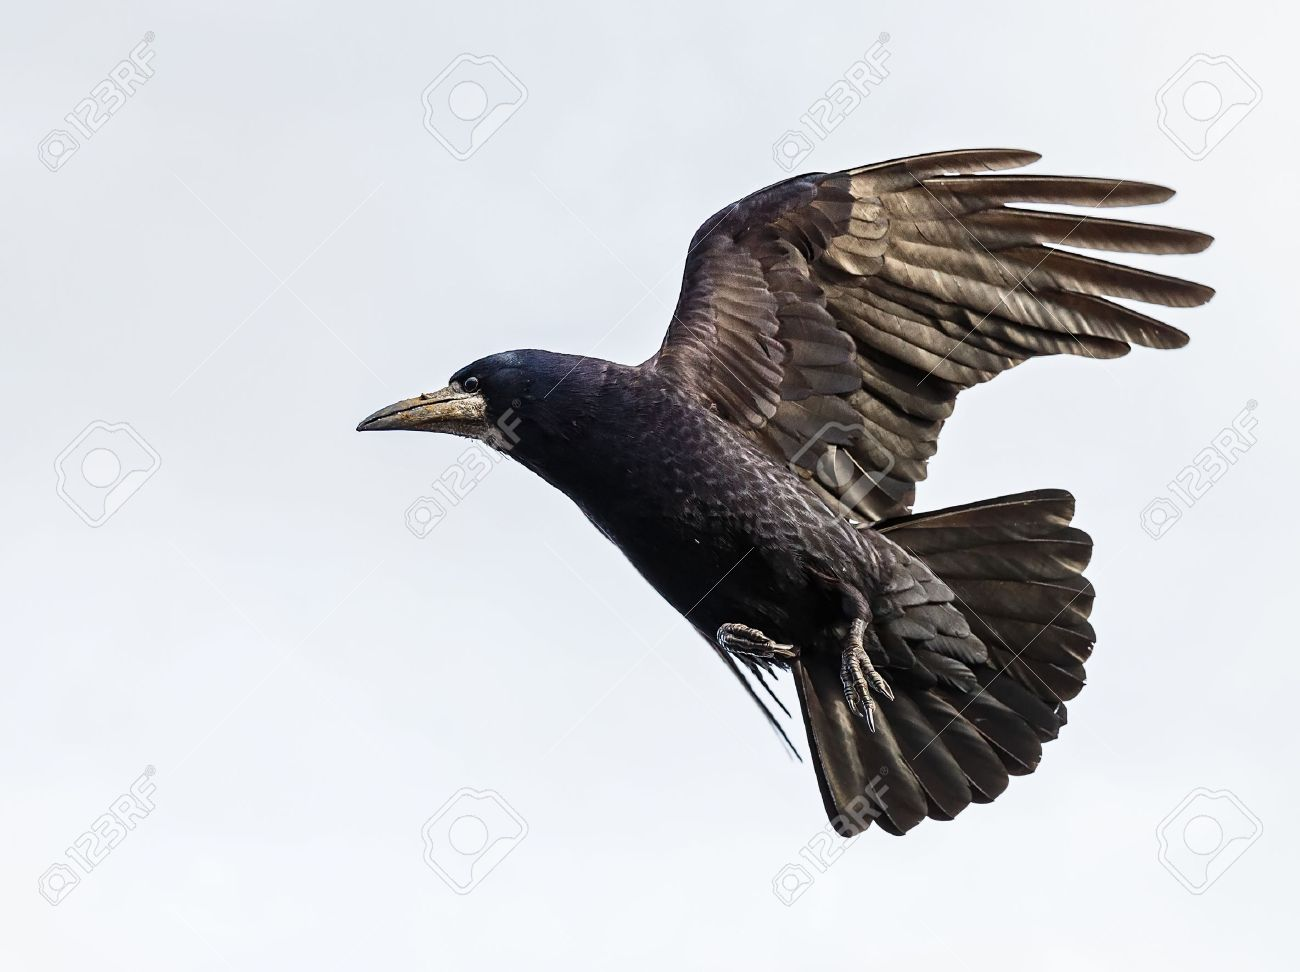 Photo of black crow flying with spread wings Standard-Bild - 54116463